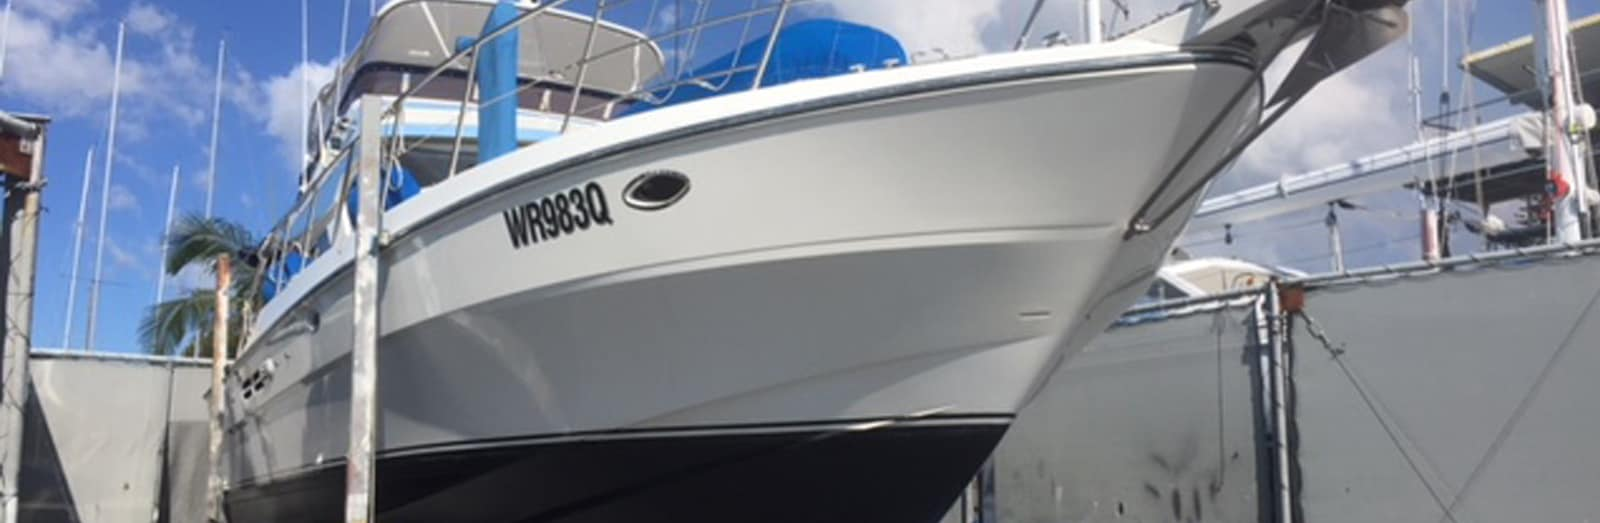 The Boat Care Company-Boat Maintenance & Detailing Company